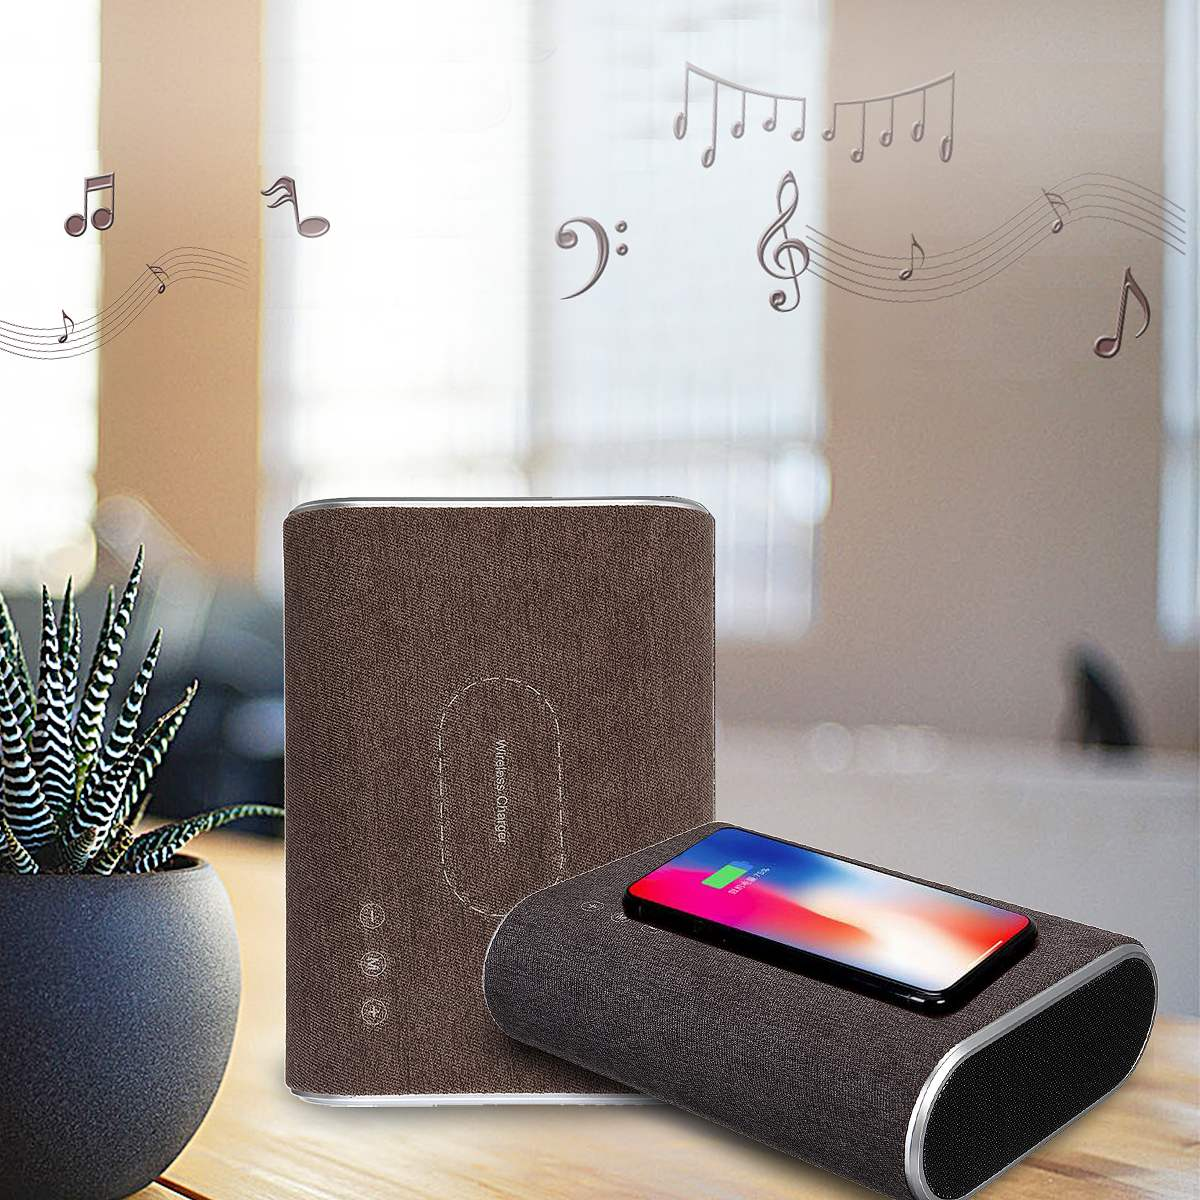 1Pcs wireless bluetooth speaker qi wireless charger Audio Mp3 music Player AUX USB portable bluetooth speaker Phone Charger nillkin cozy mc1 2 in 1 qi wireless charger hifi bluetooth speaker